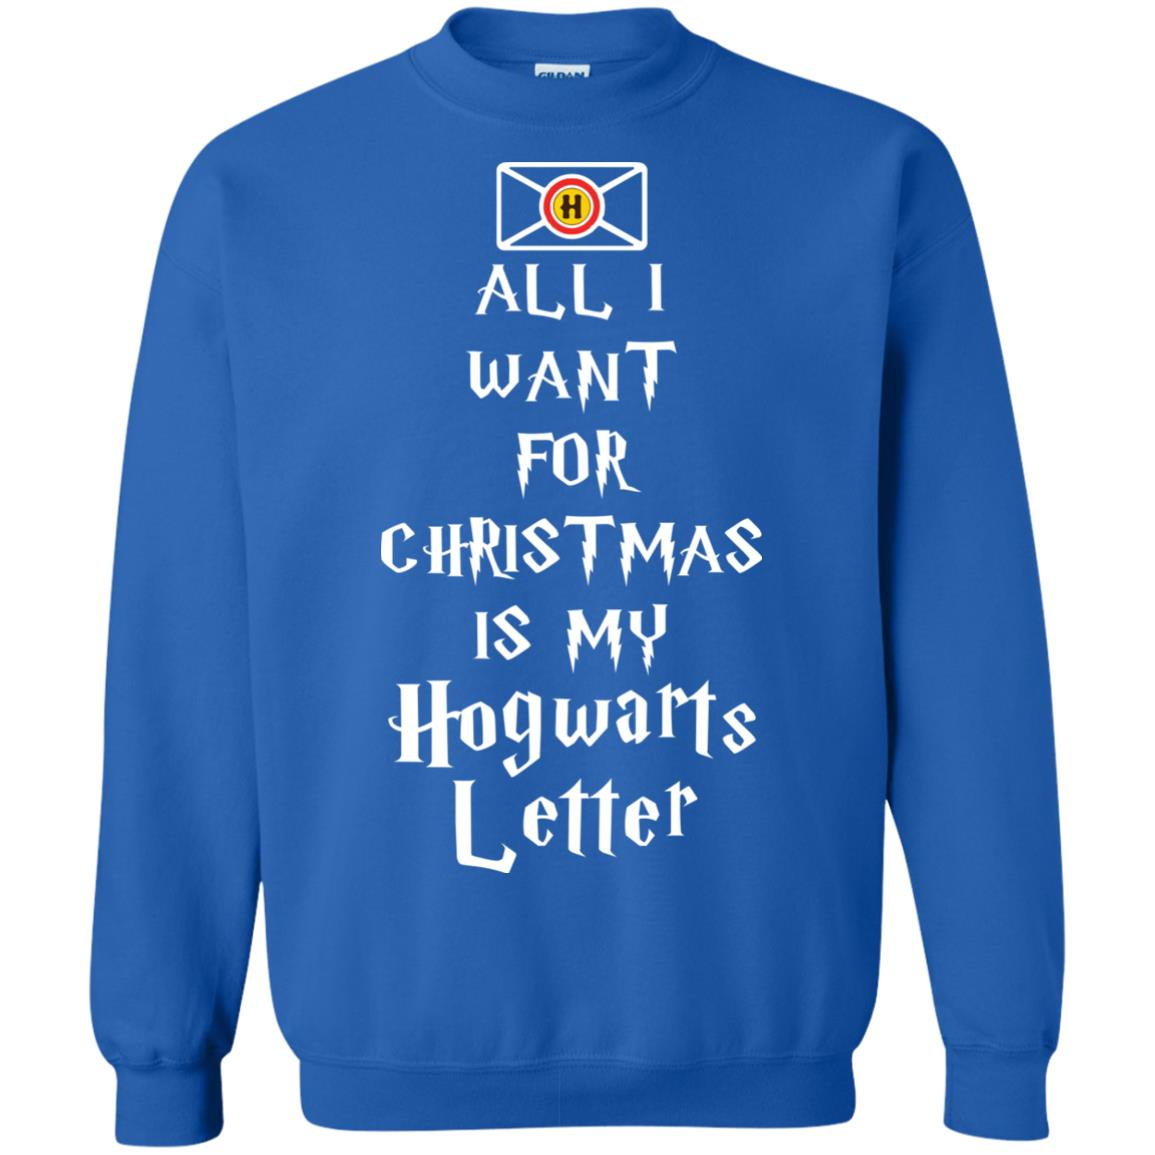 All i want for christmas is my hogwarts letter sweatshirt for Hogwarts letter shirt